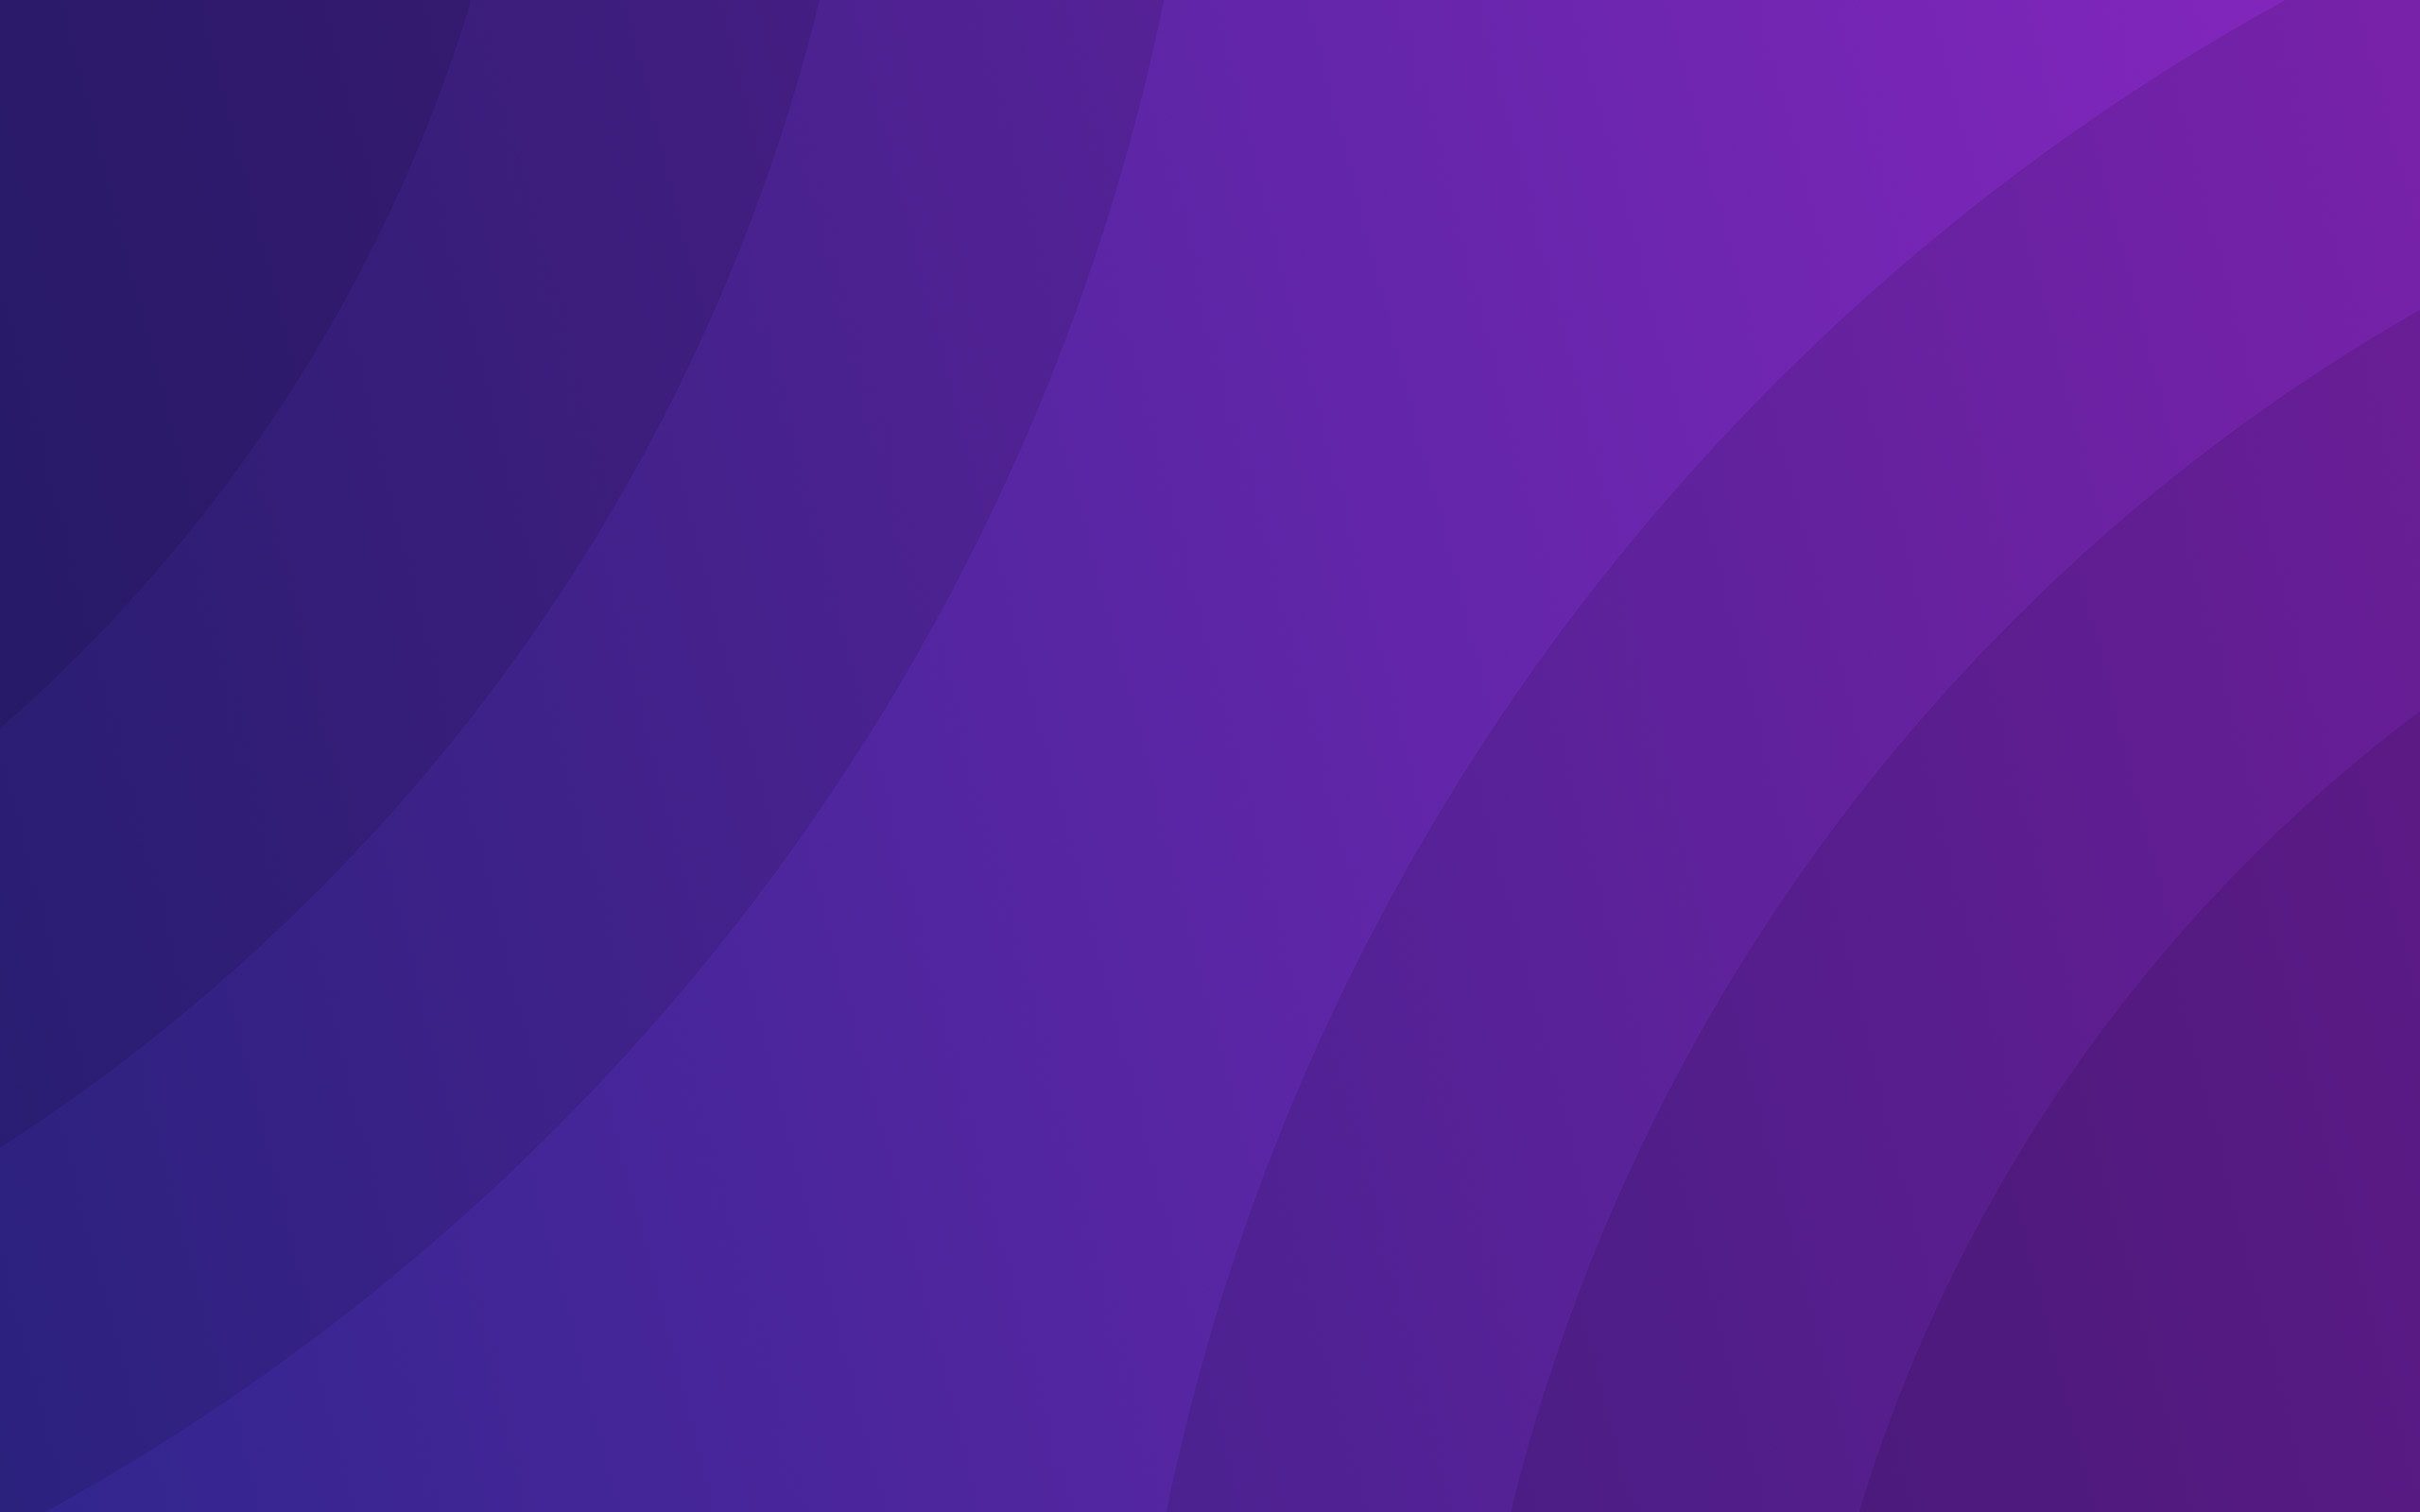 wallpaper for desktop, laptop | vy67-circle-blue-purple ... Dark Blue Background Hd